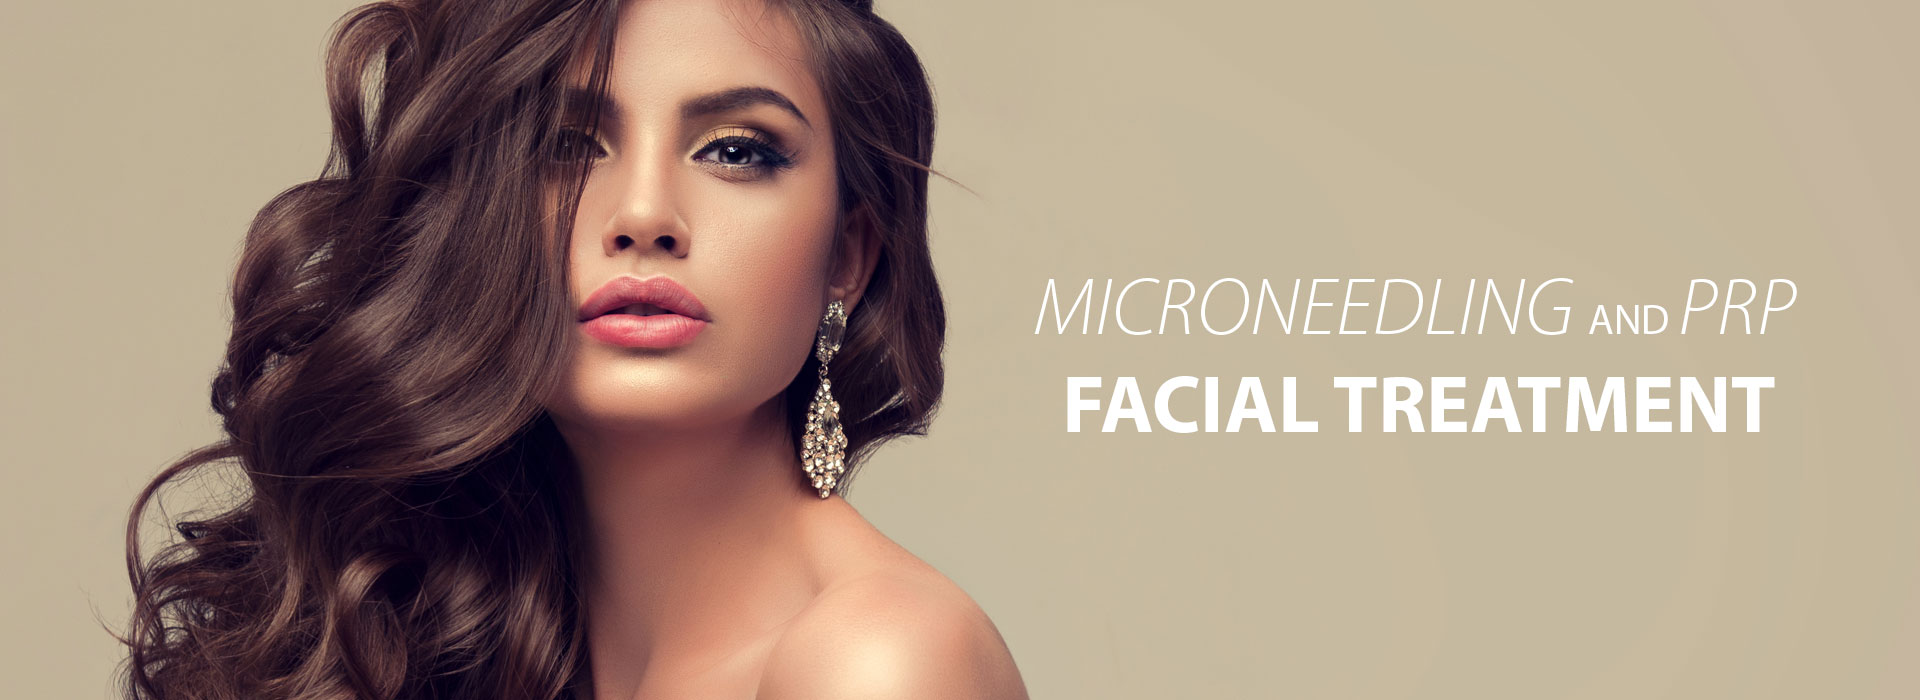 Microneedling and PRP Facial Treatment   Vitality Health